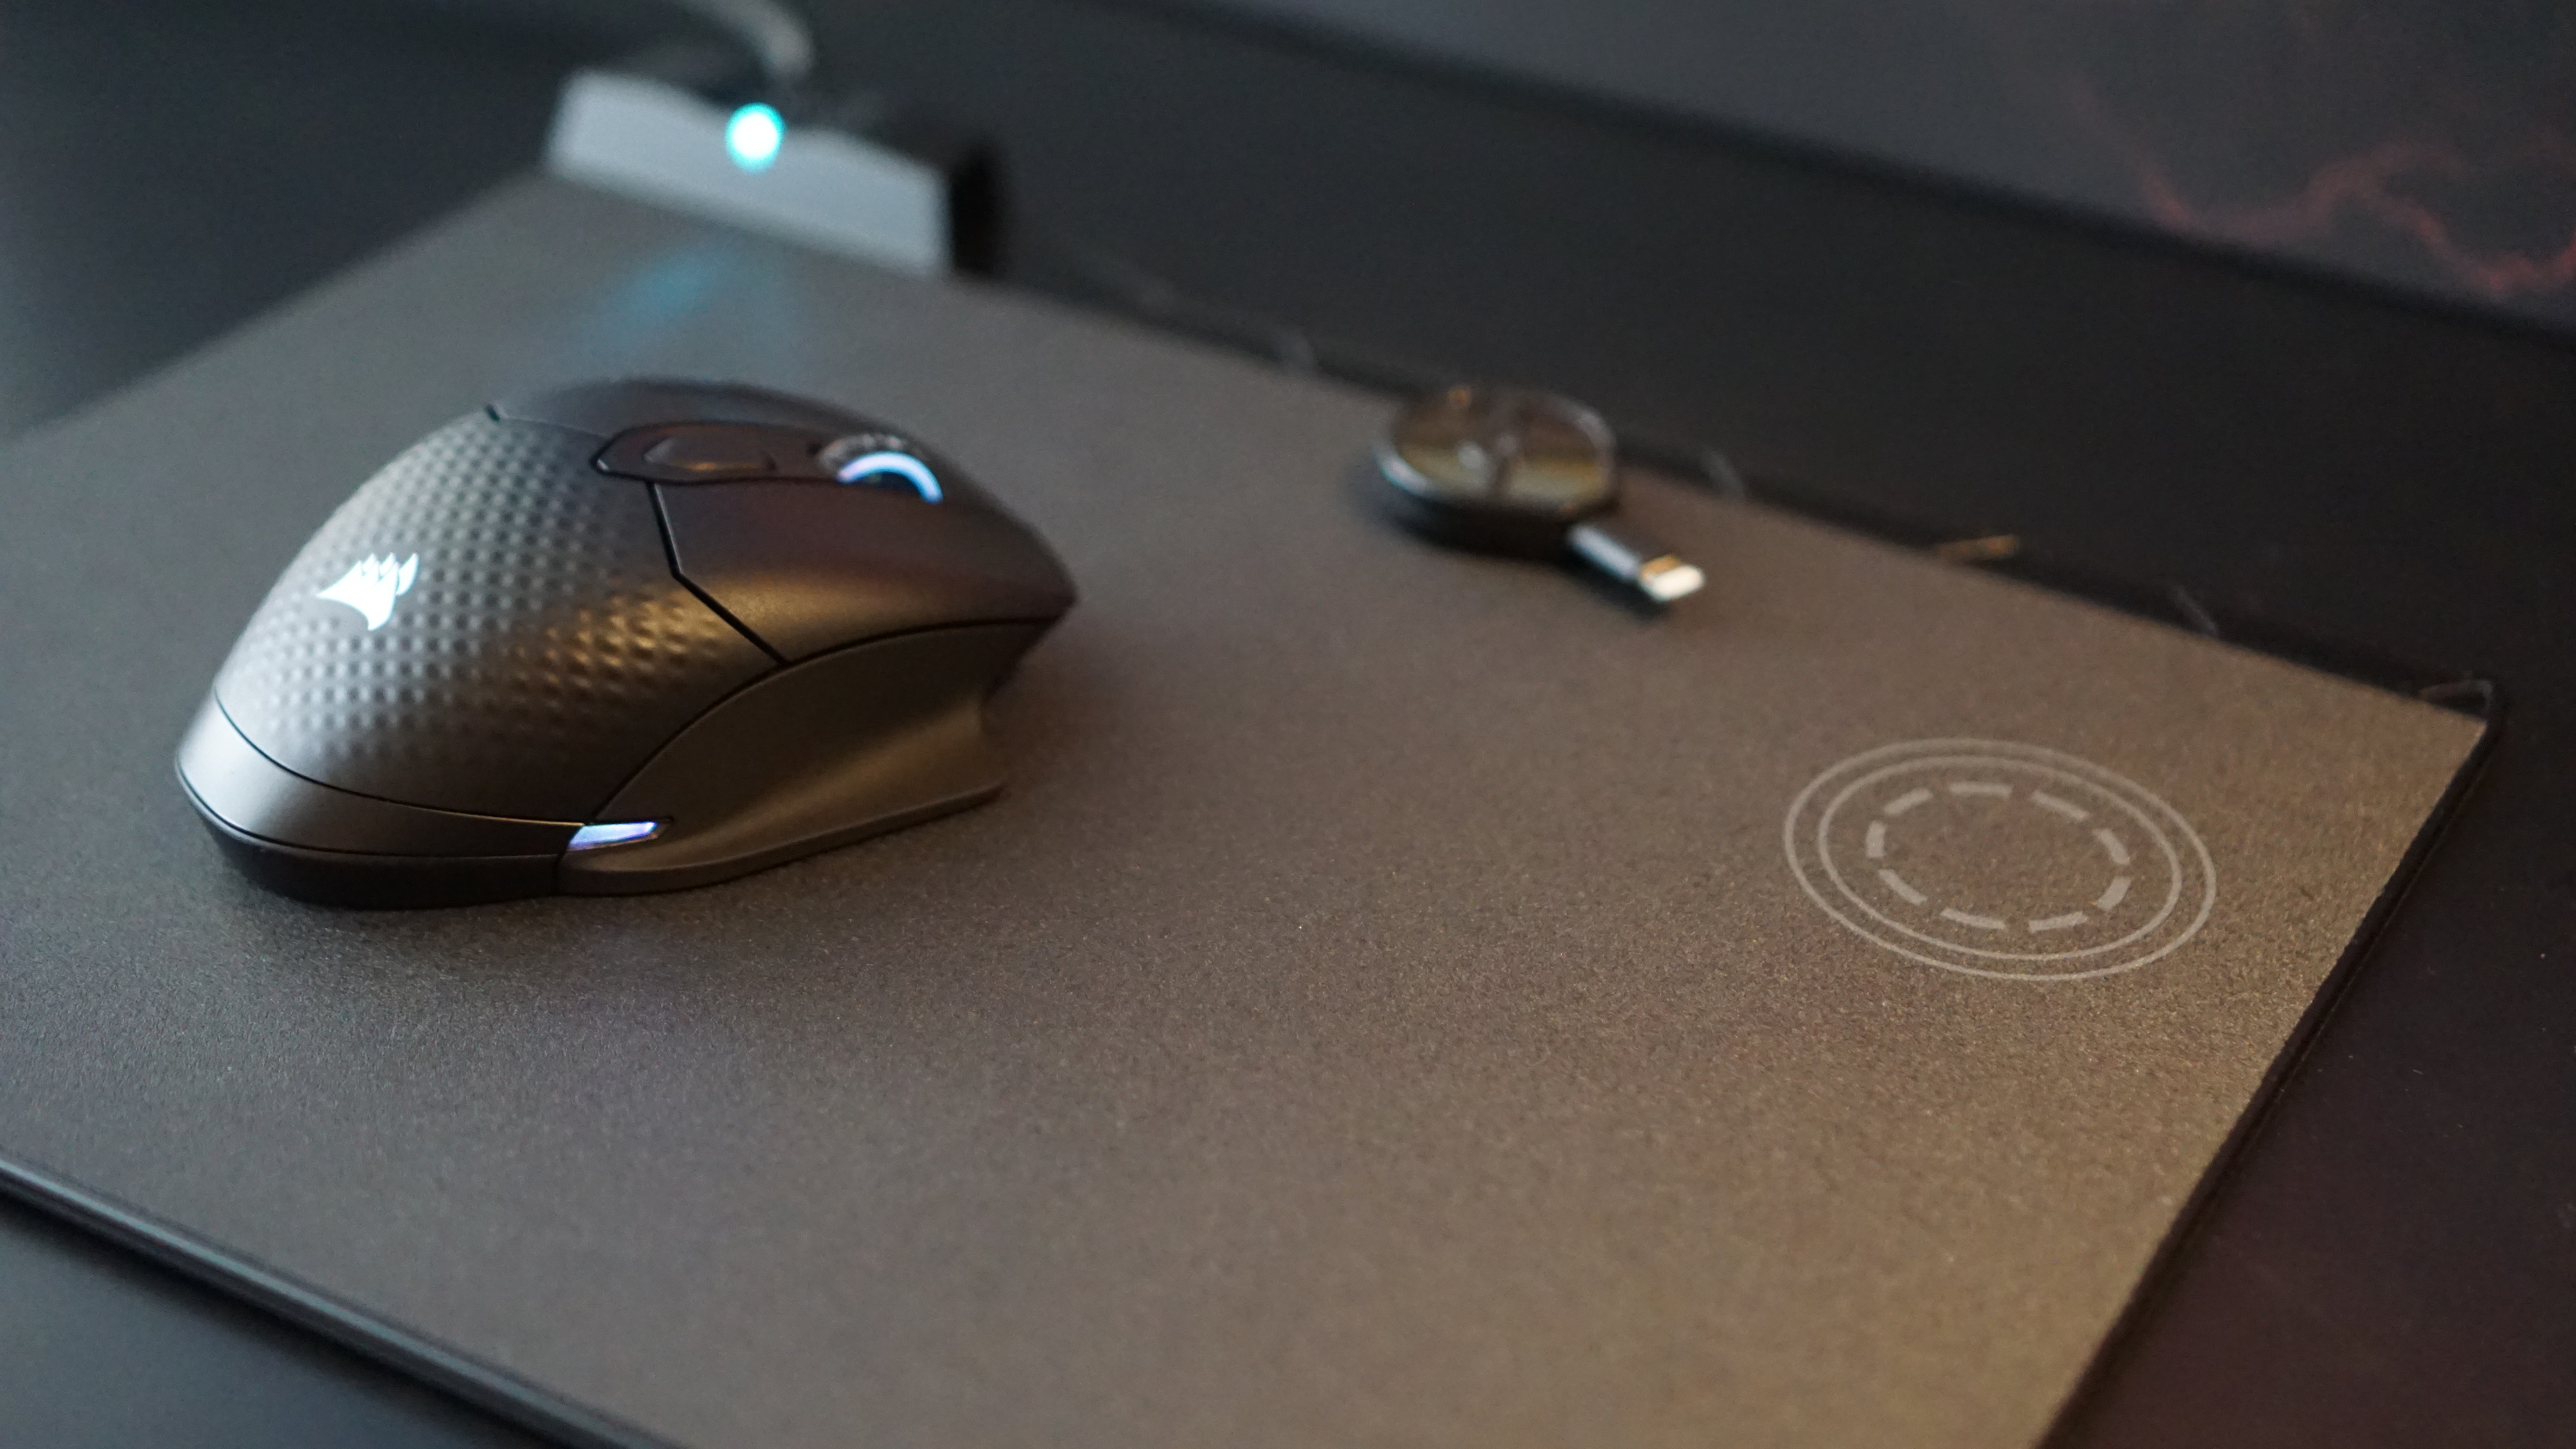 Wireless gaming mice are here, but are we ready for wireless